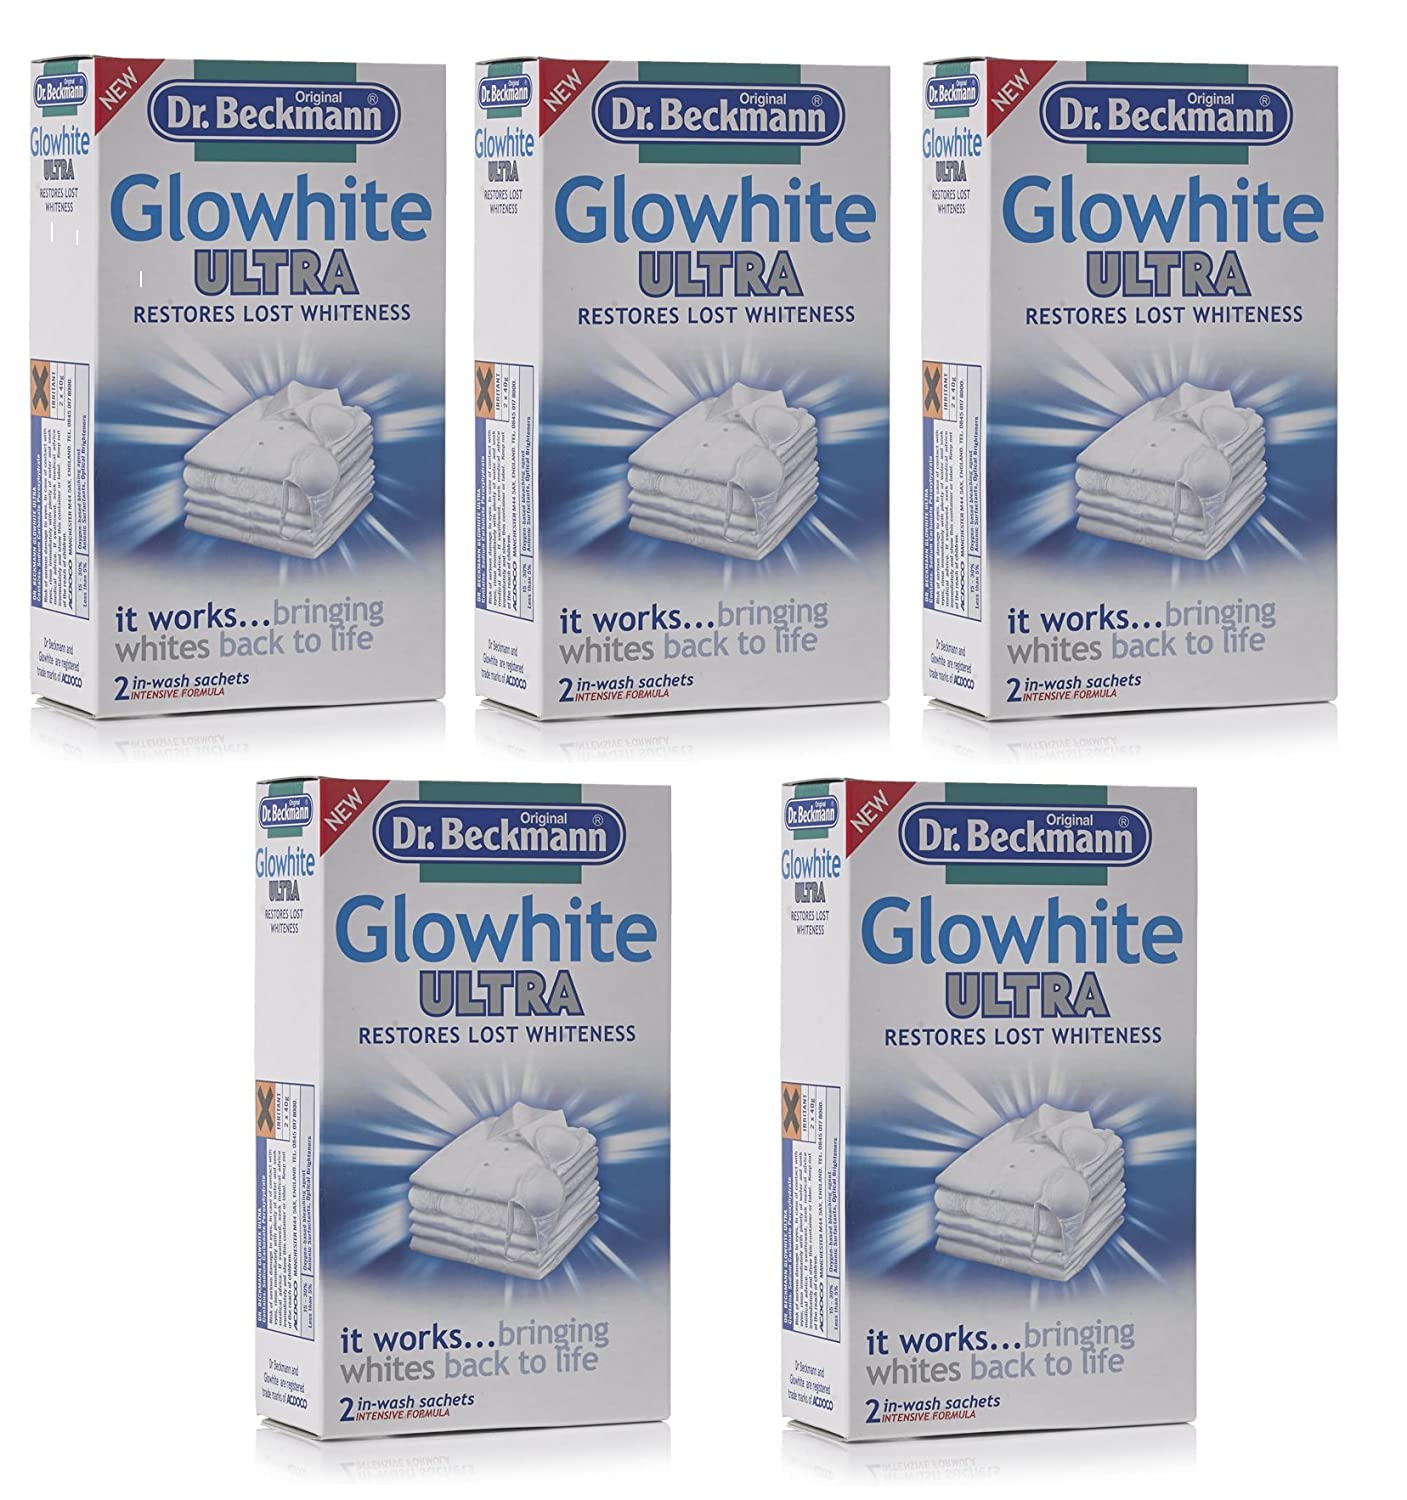 Dr.Beckmann Glowhite Ultra (Set of 5 Boxes) Acdoco